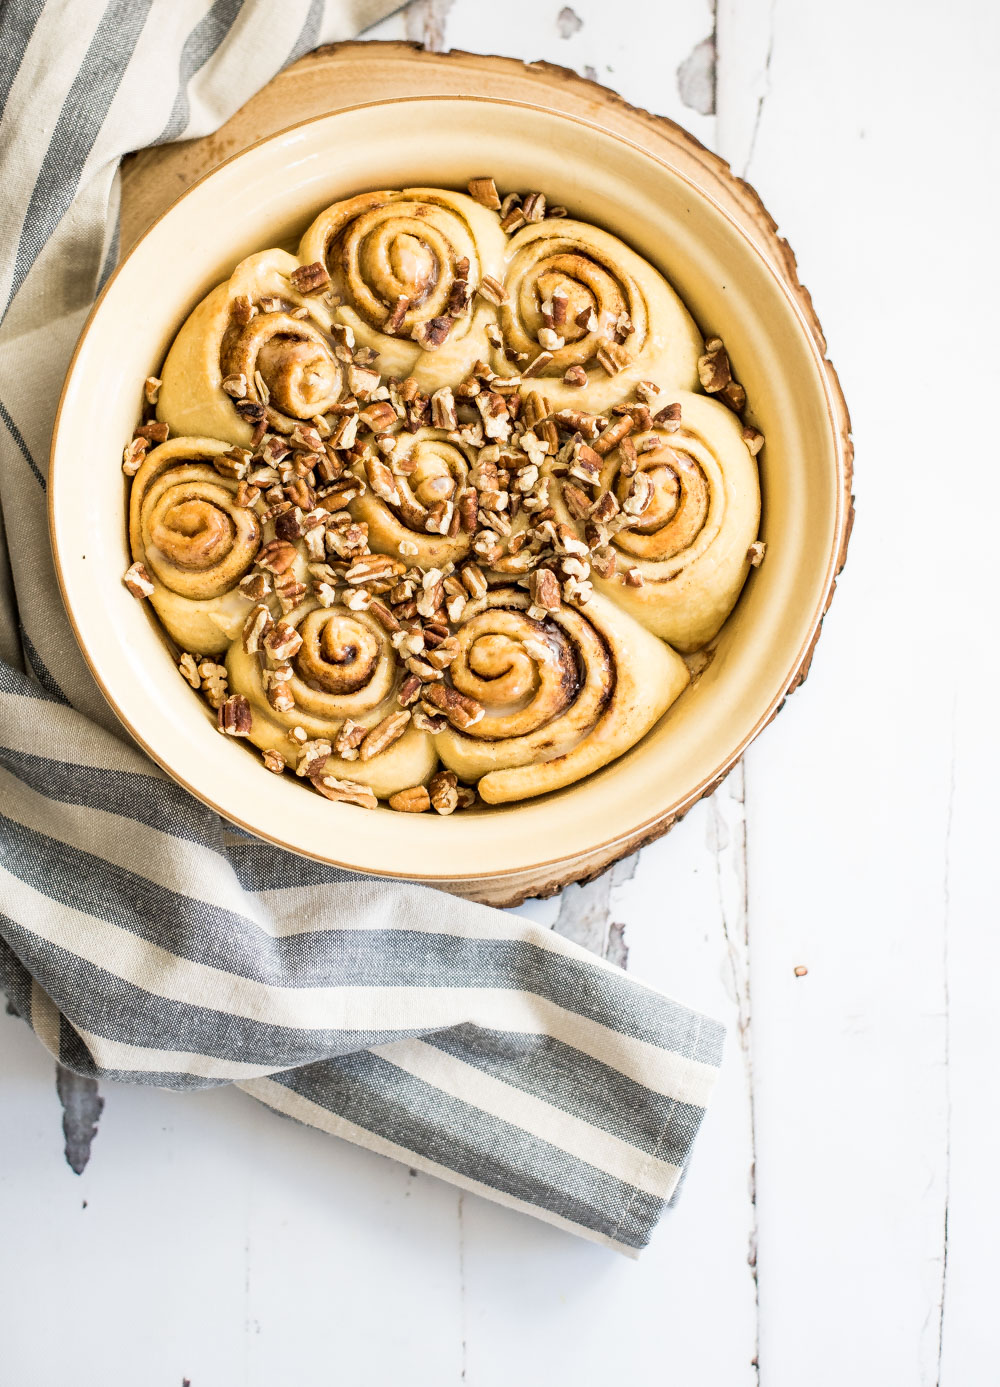 Cinnamon rolls were never so easy to make! These vegan cinnamon rolls only require a handful of ingredients and super simple instructions. Make them soon!